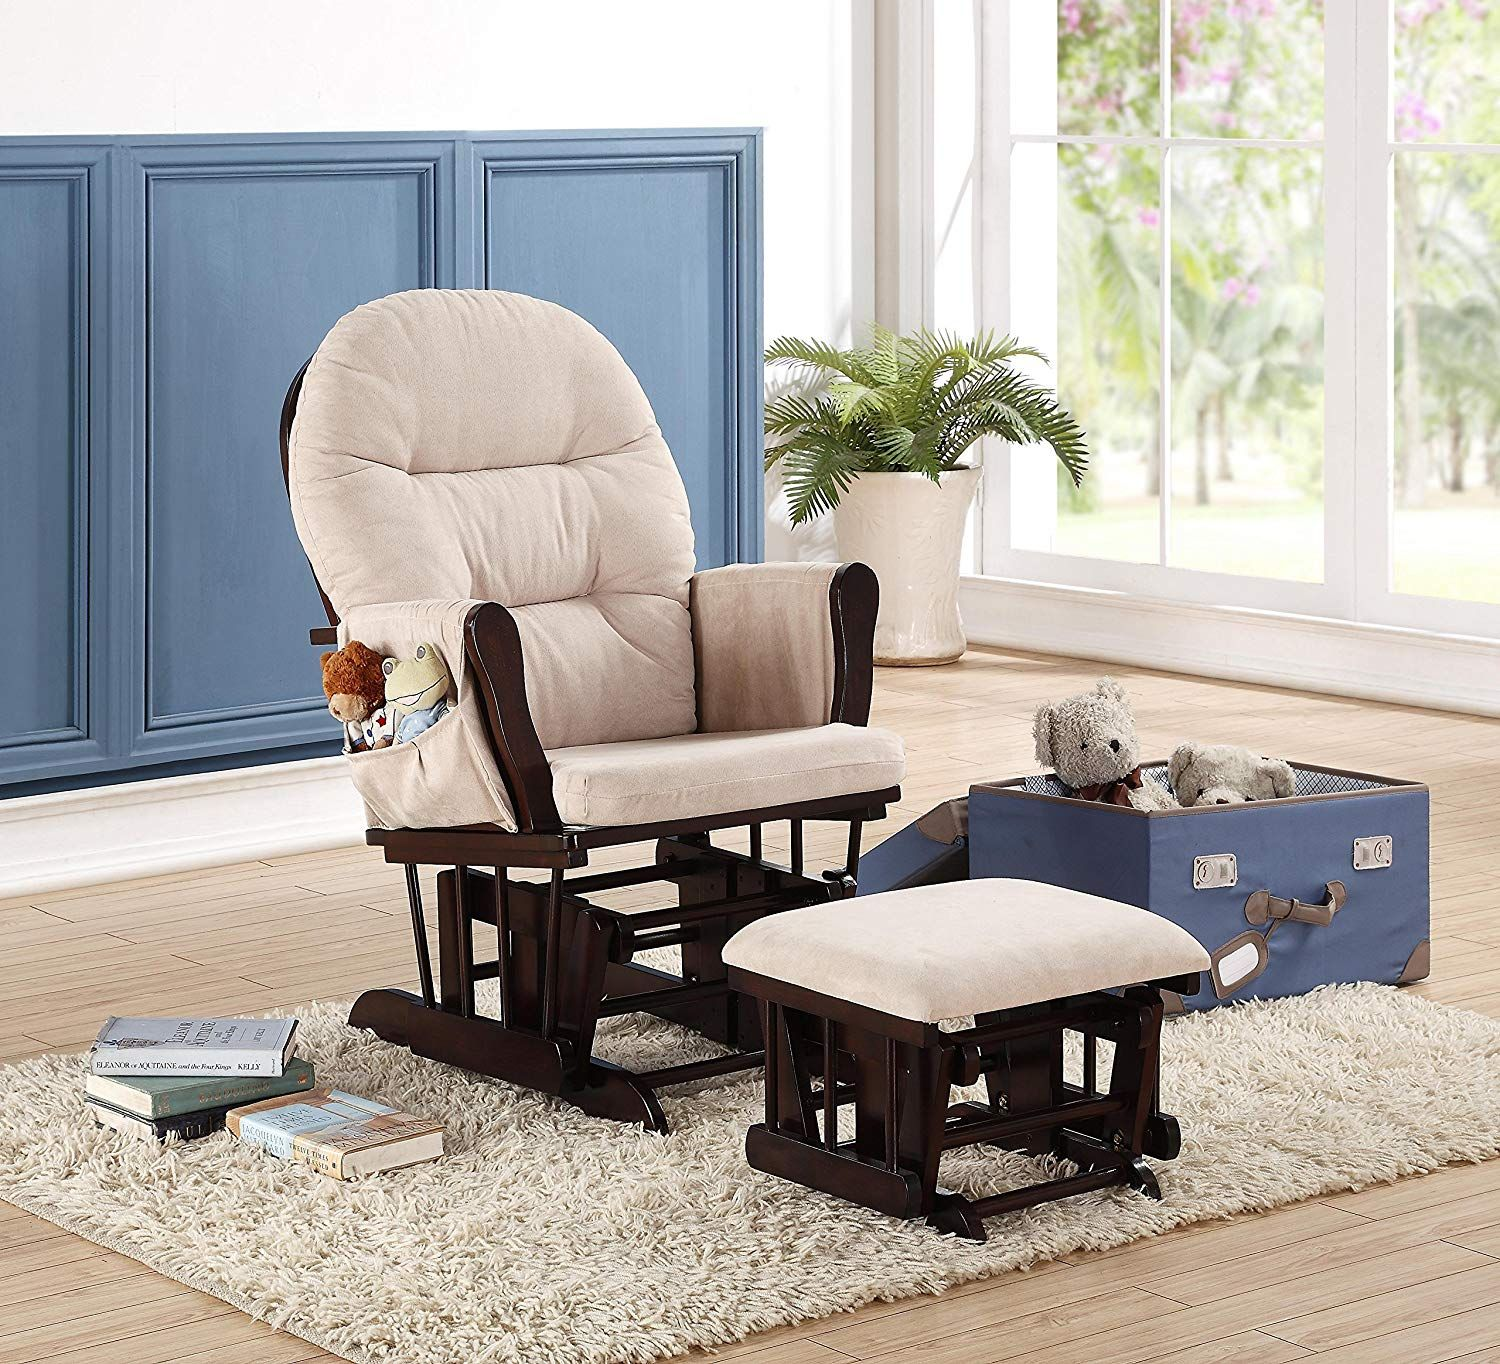 Best Nursery Gliders 2020 With Images